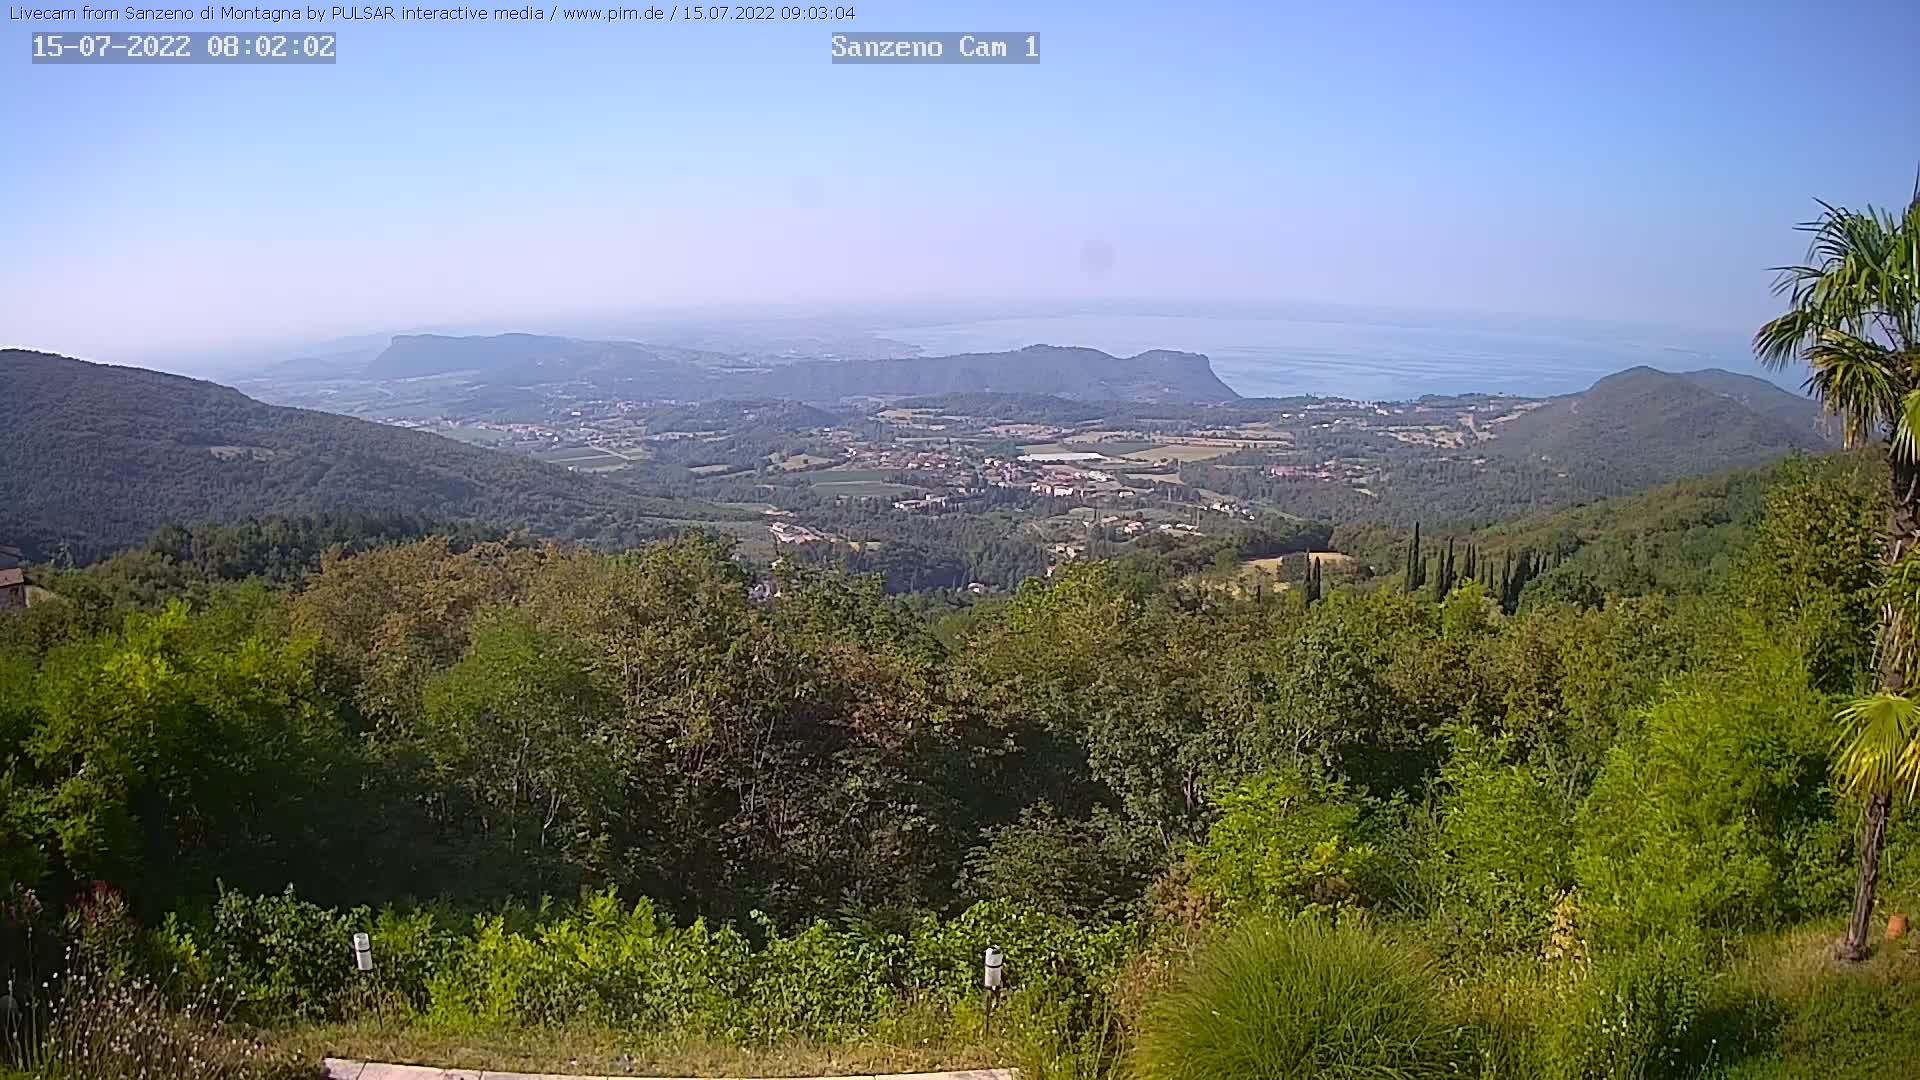 Webcam San Zeno di Montagna